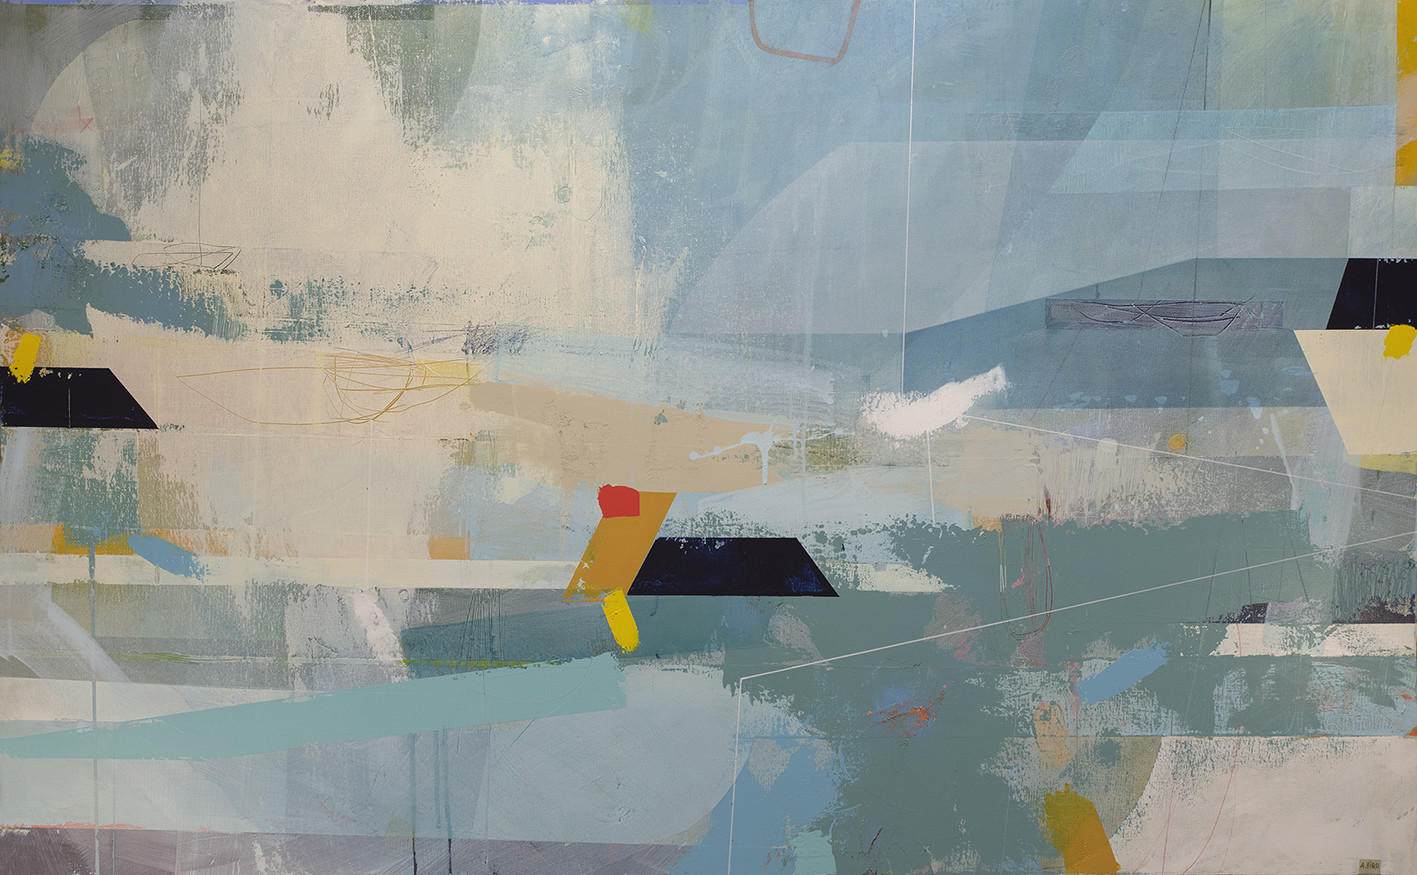 """<span class=""""link fancybox-details-link""""><a href=""""/artists/77-andrew-bird/works/6208-andrew-bird-wanderlust-2019/"""">View Detail Page</a></span><div class=""""artist""""><strong>Andrew Bird</strong></div> <div class=""""title""""><em>Wanderlust</em>, 2019</div> <div class=""""signed_and_dated"""">signed, titled and dated on reverse</div> <div class=""""medium"""">acrylic on canvas</div> <div class=""""dimensions"""">h 76 x w 122 cm<br /> 29 7/8 x 48 1/8 in</div><div class=""""price"""">£3,200.00</div><div class=""""copyright_line"""">Own Art: £ 250 x 10 Months, 0% APR + £700</div>"""